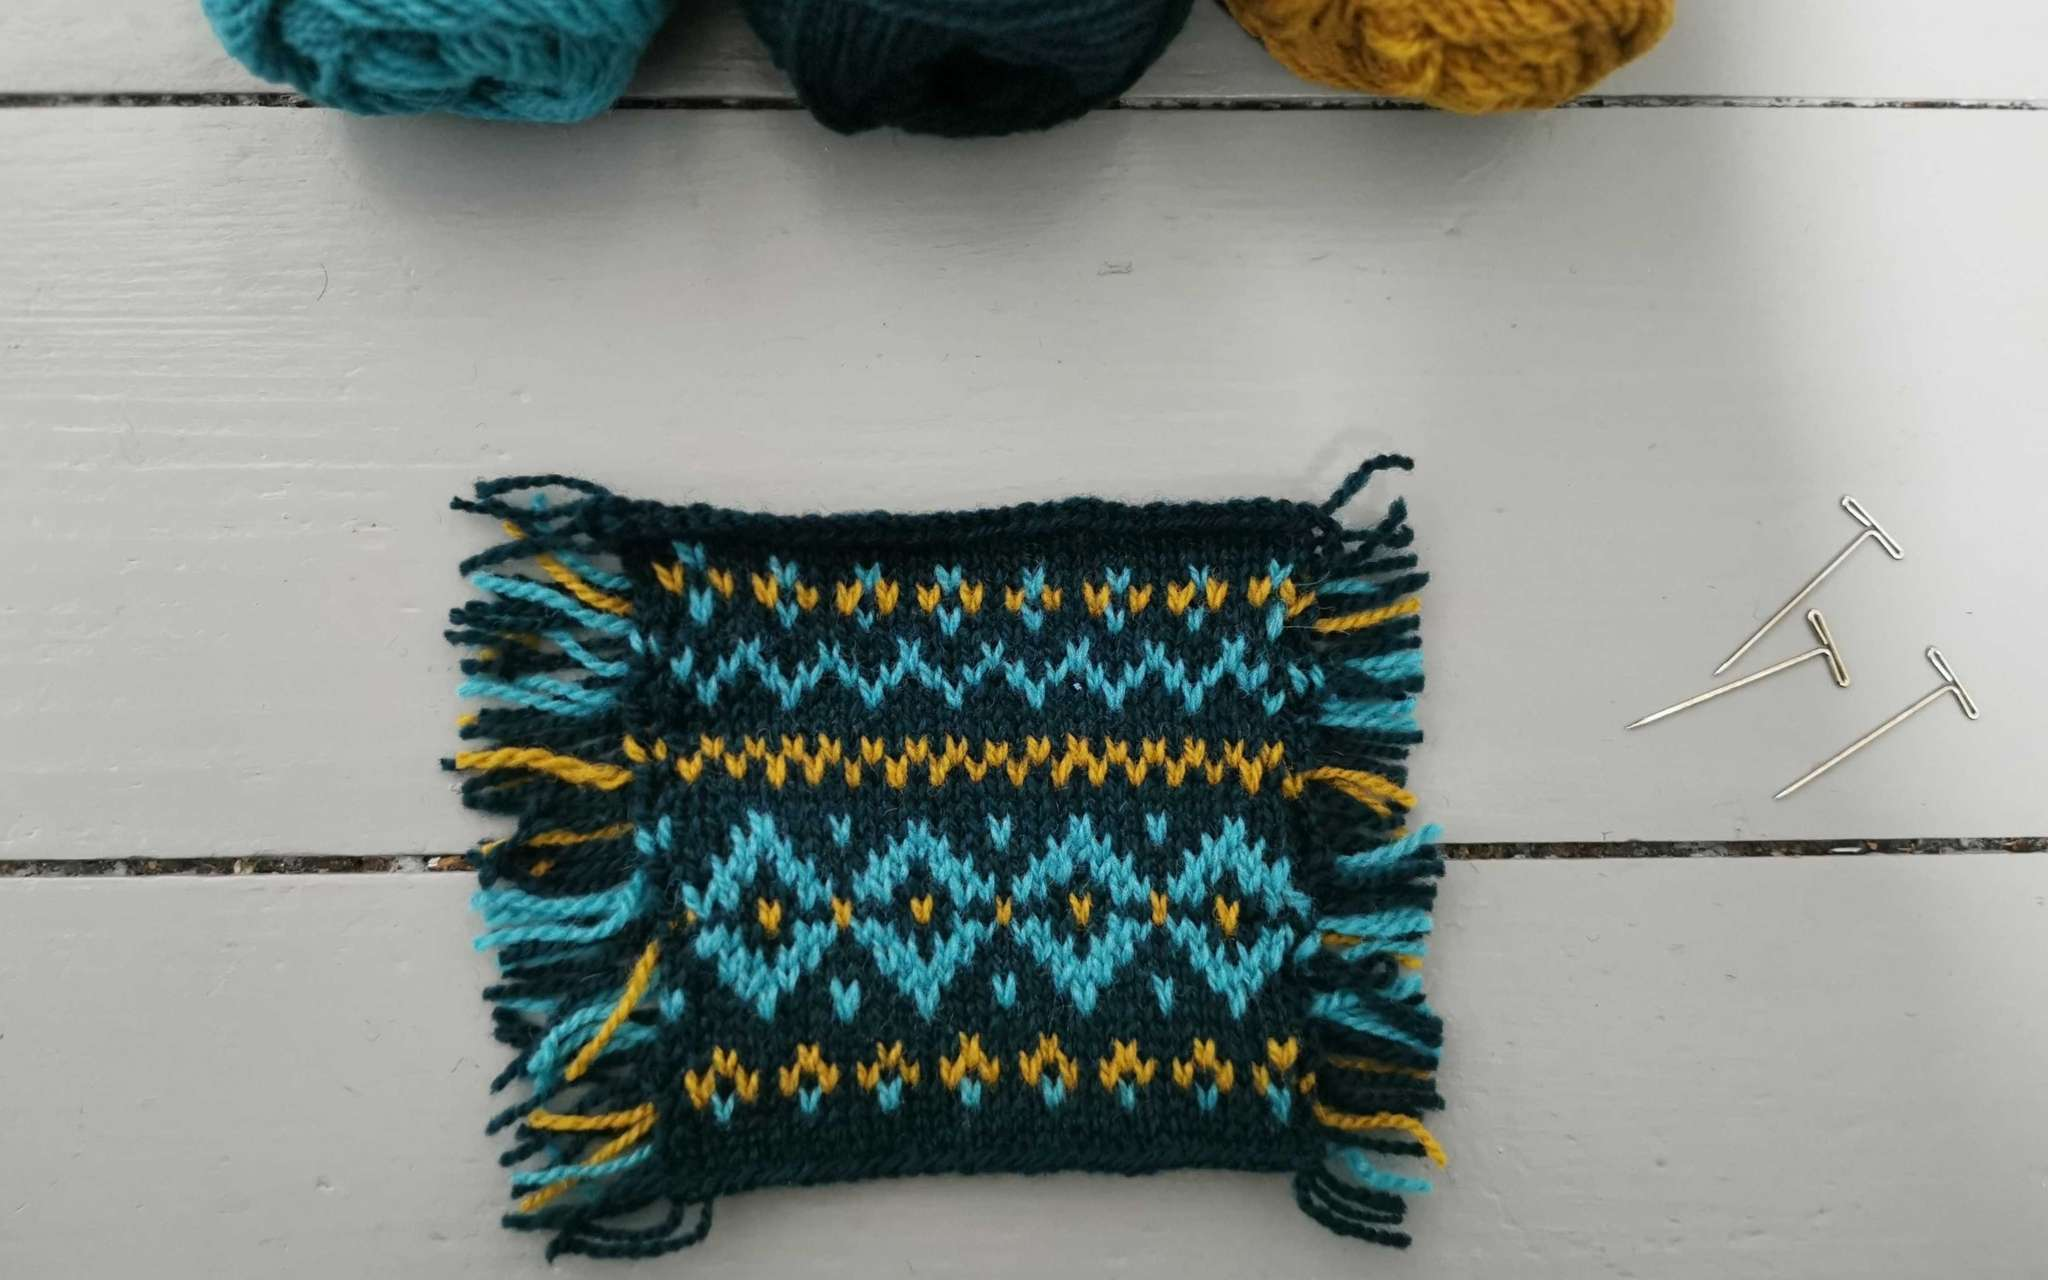 a square knitted swatch in navy, gold and teal colourwork. Three balls of yarn peak out at the top of the image and lay on a grey wooden surface